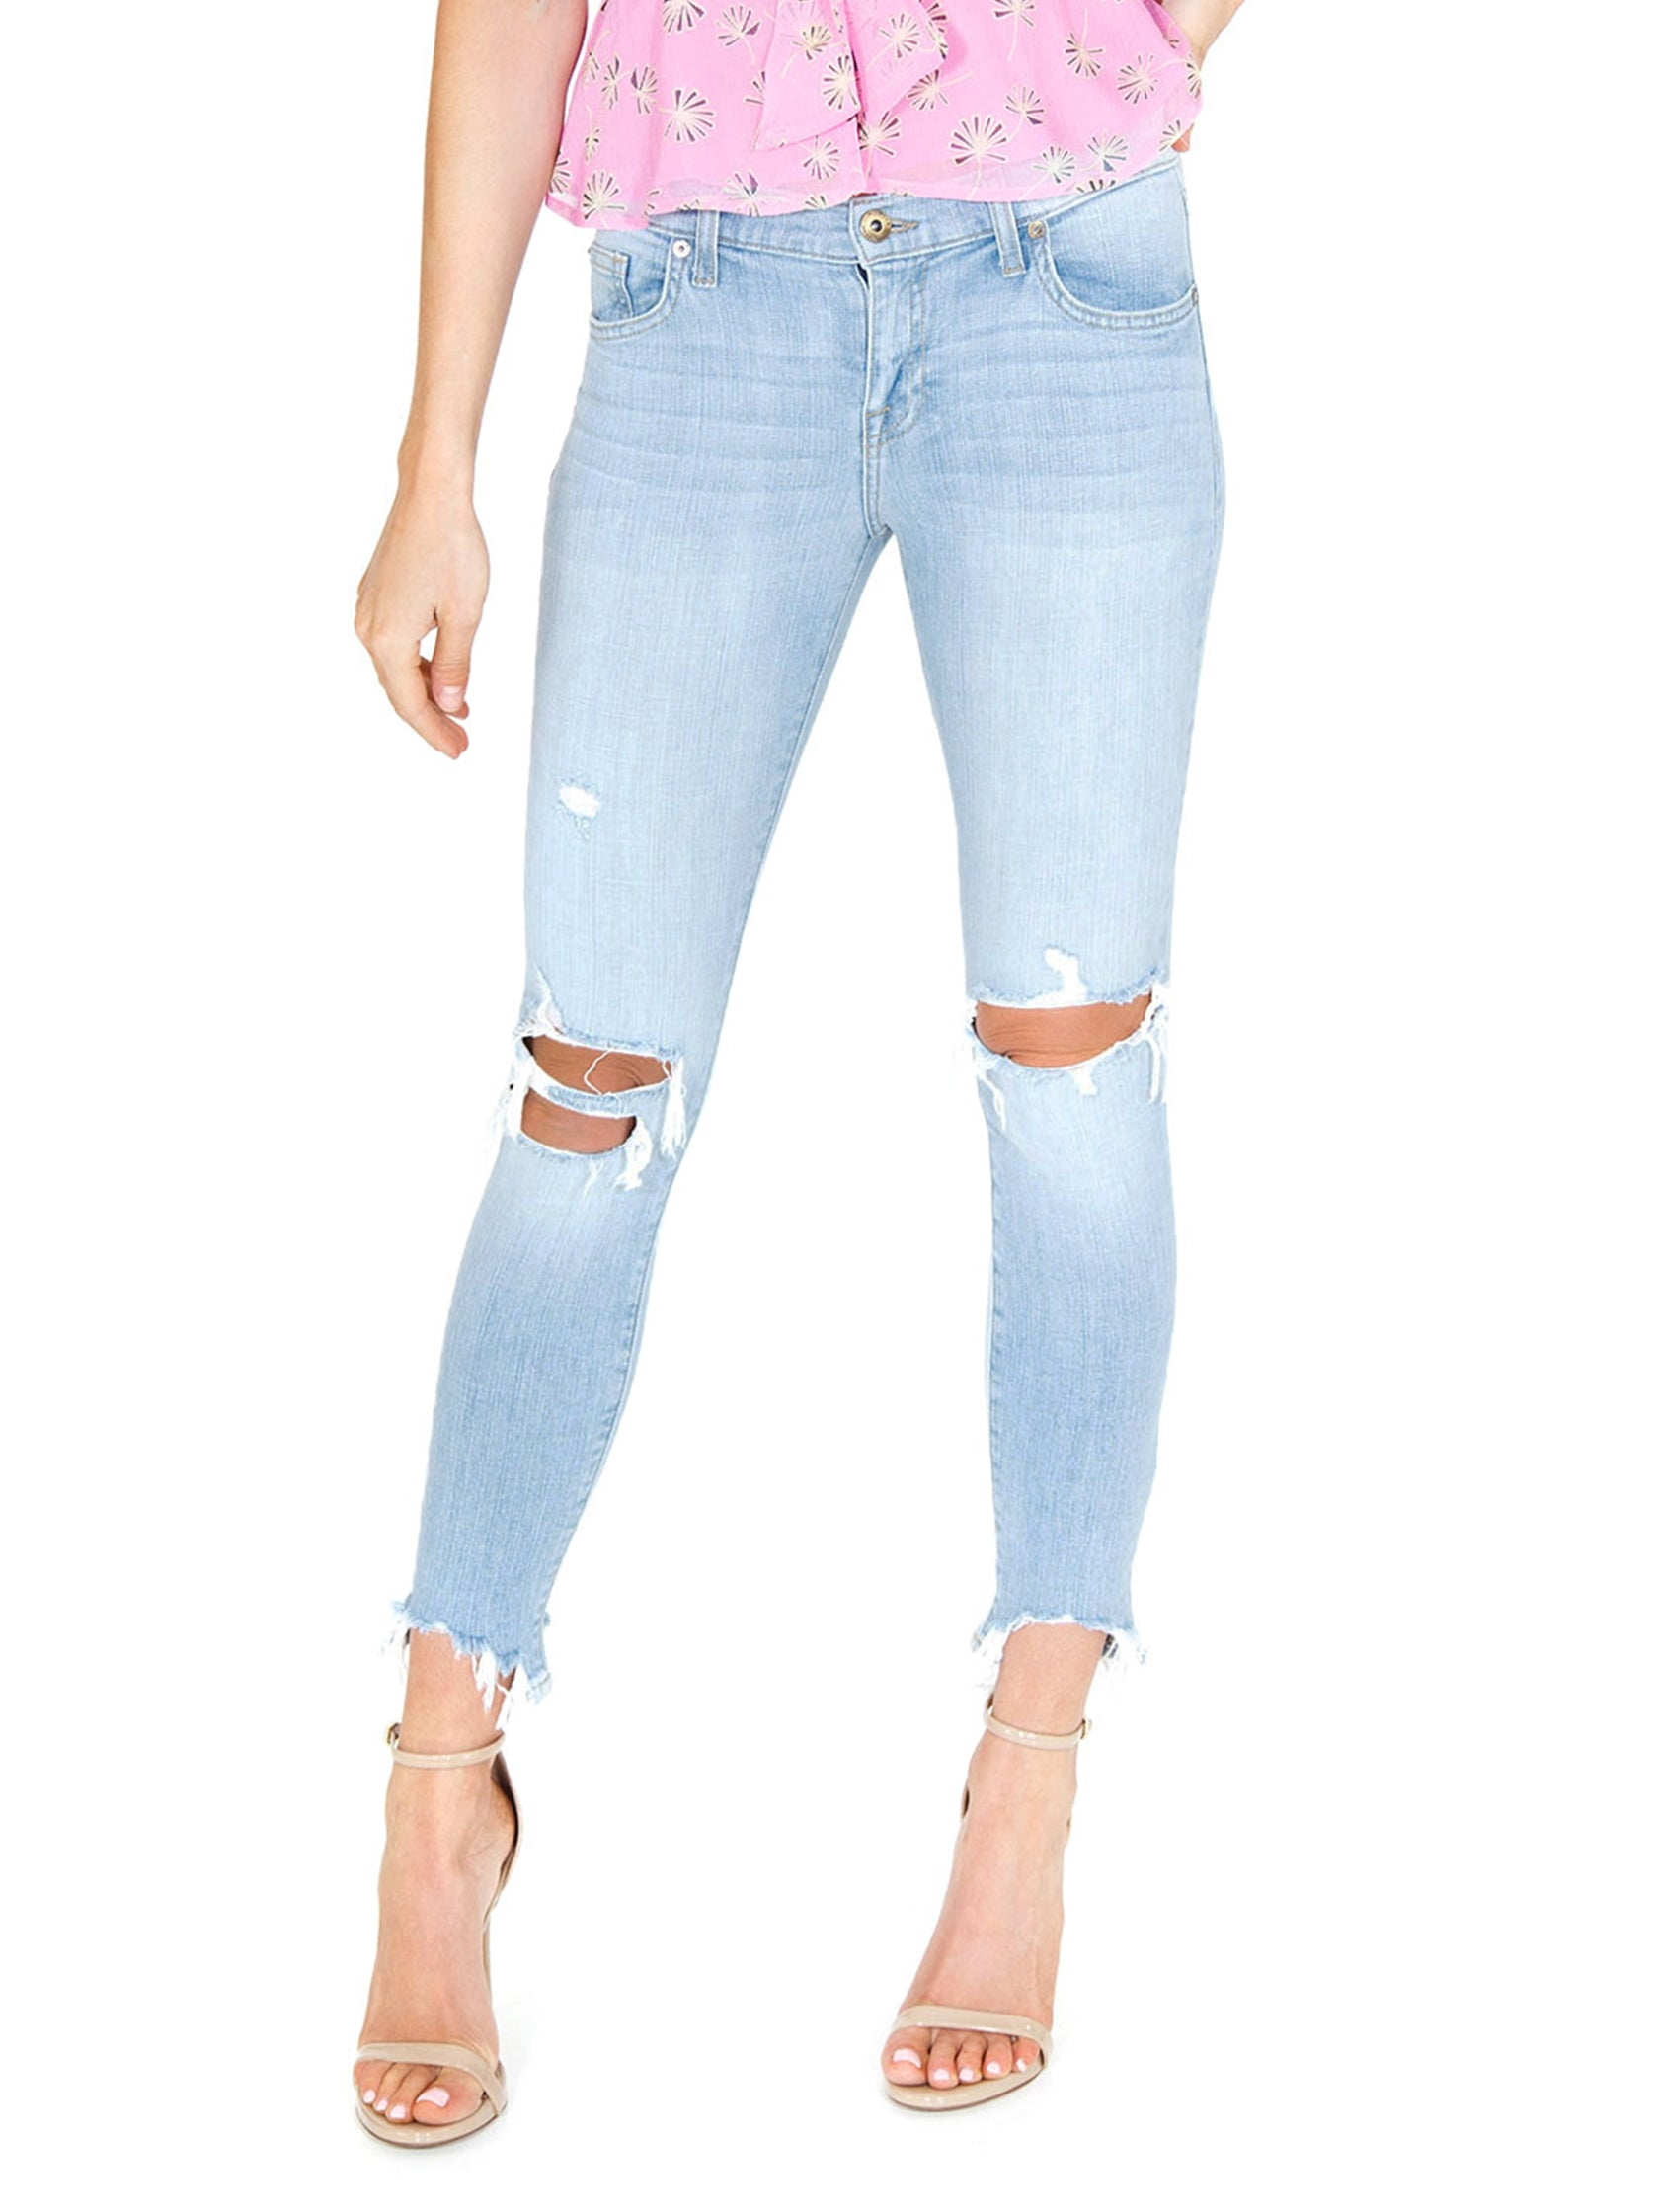 Girl outfit in a denim rental from PISTOLA called Audrey Mid Rise Skinny Jeans